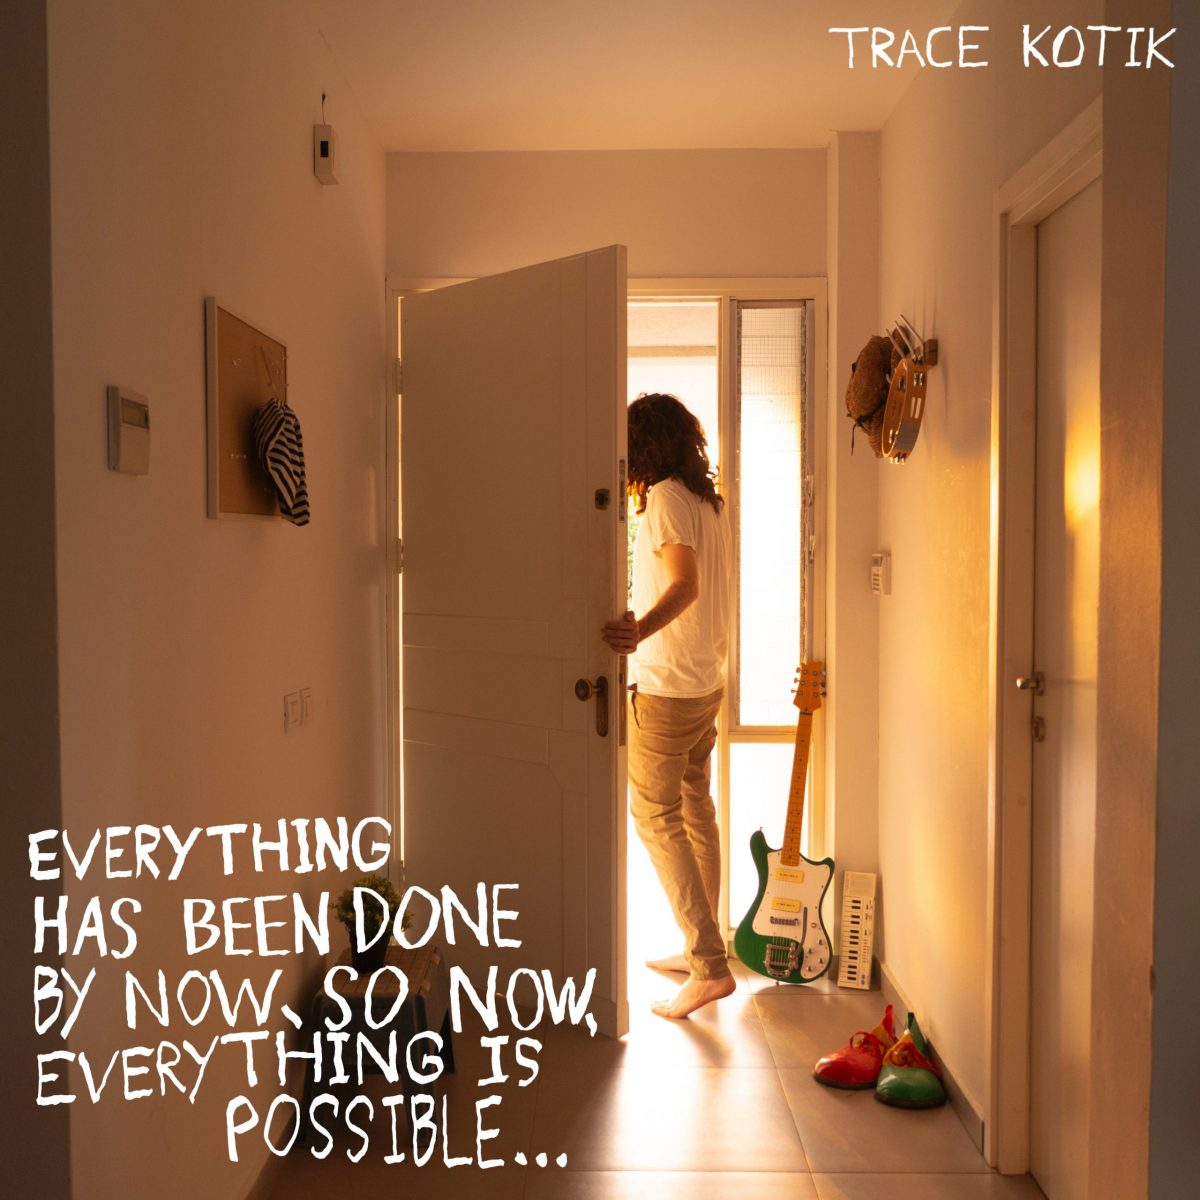 trace-kotik-everything-has-been-done-by-now-so-now-everything-is-possible-album-review